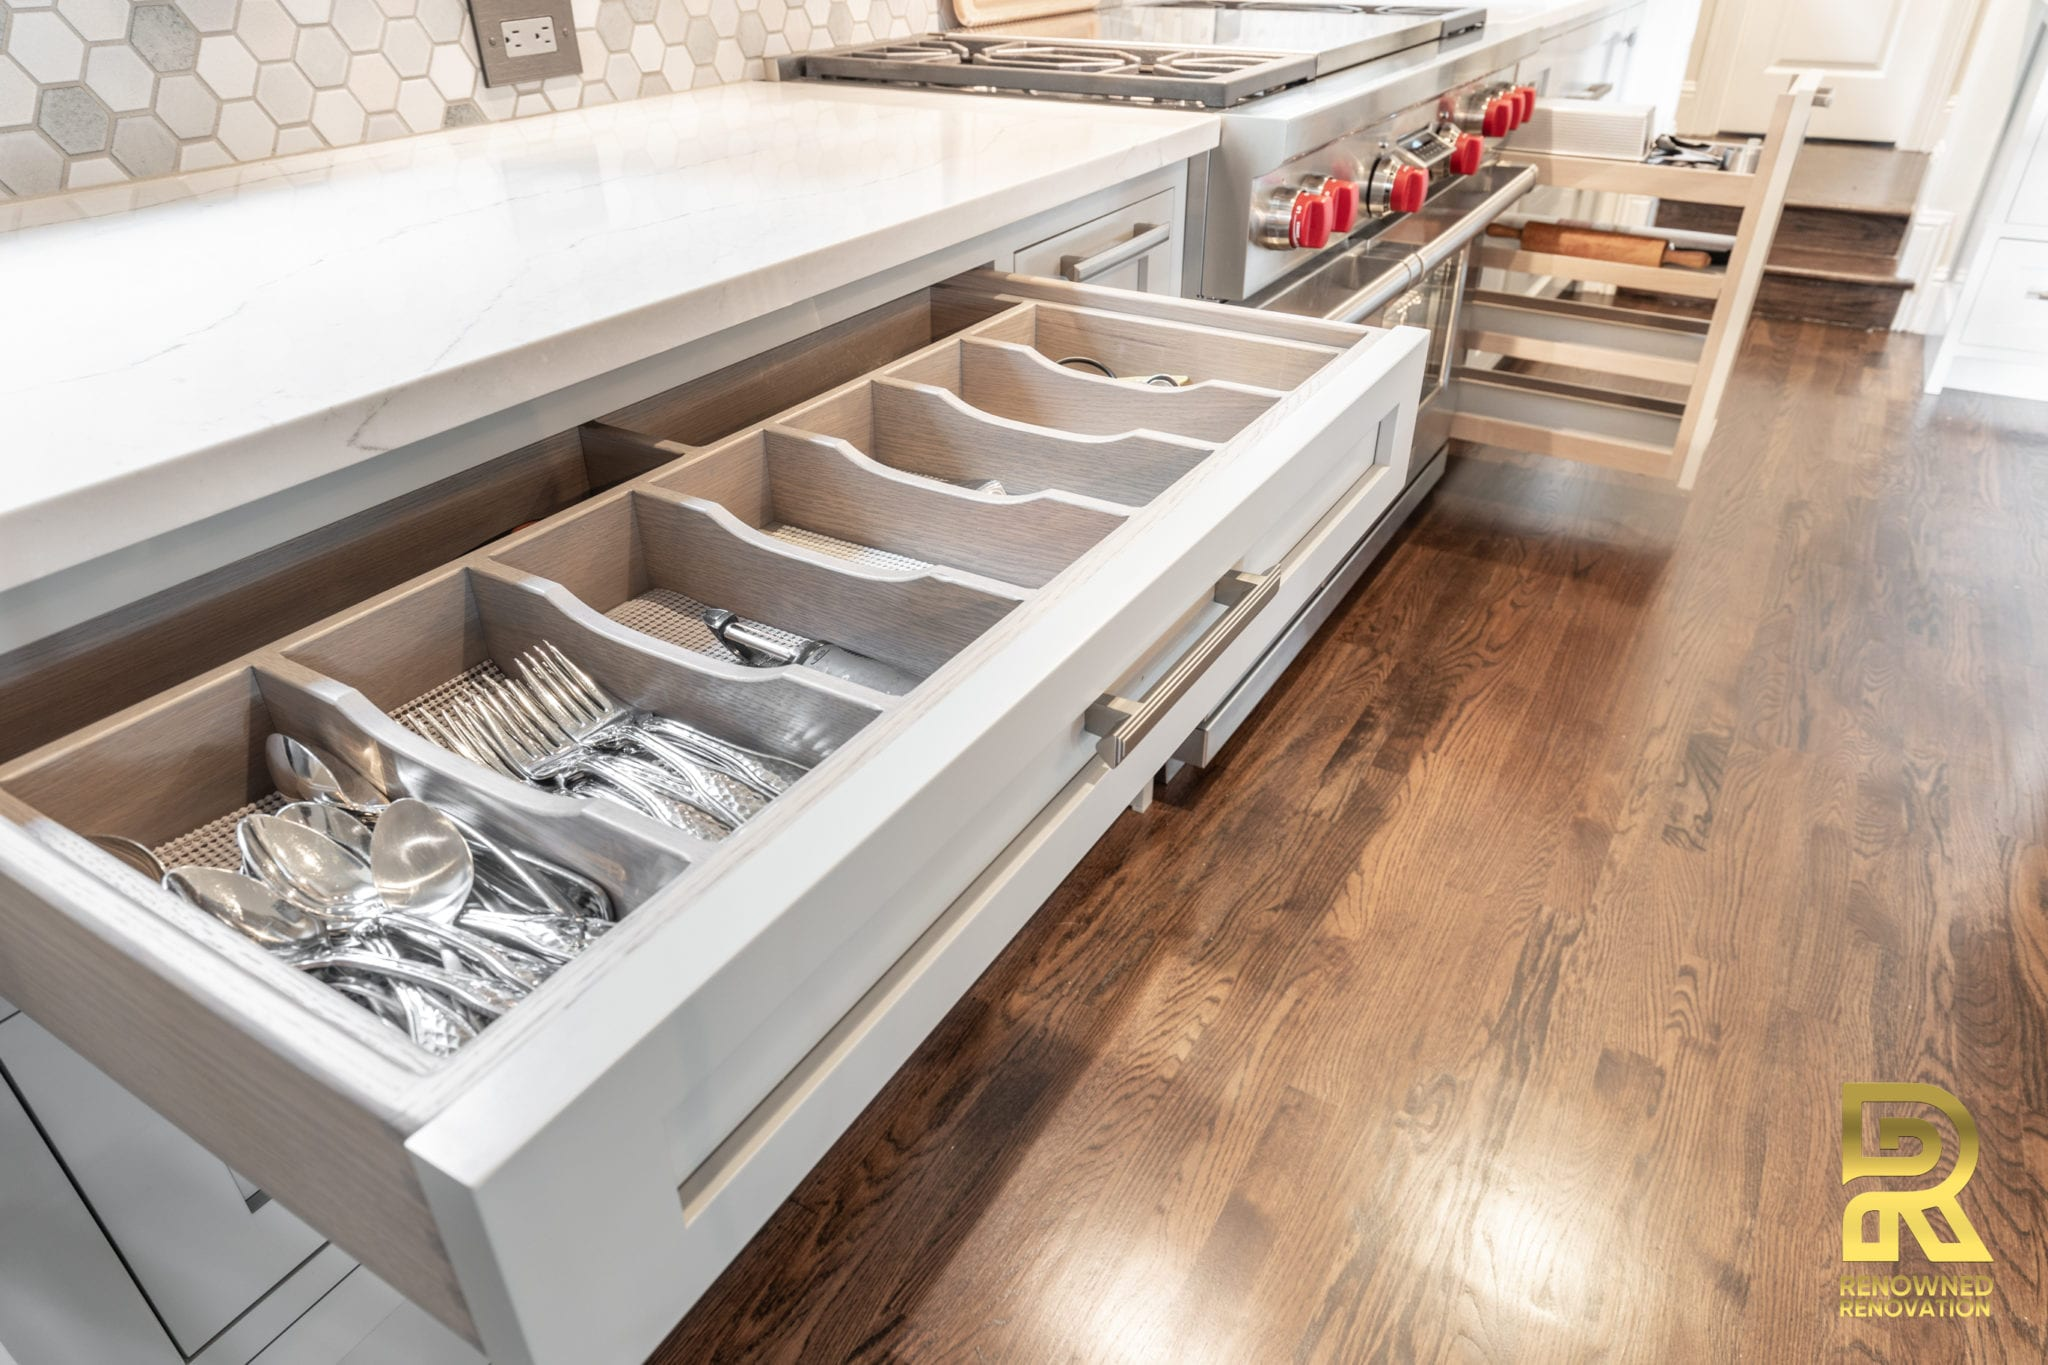 Custom-Kitchen-Cabinets-Designed-byRemodel-By-Renowned-Renovation-19